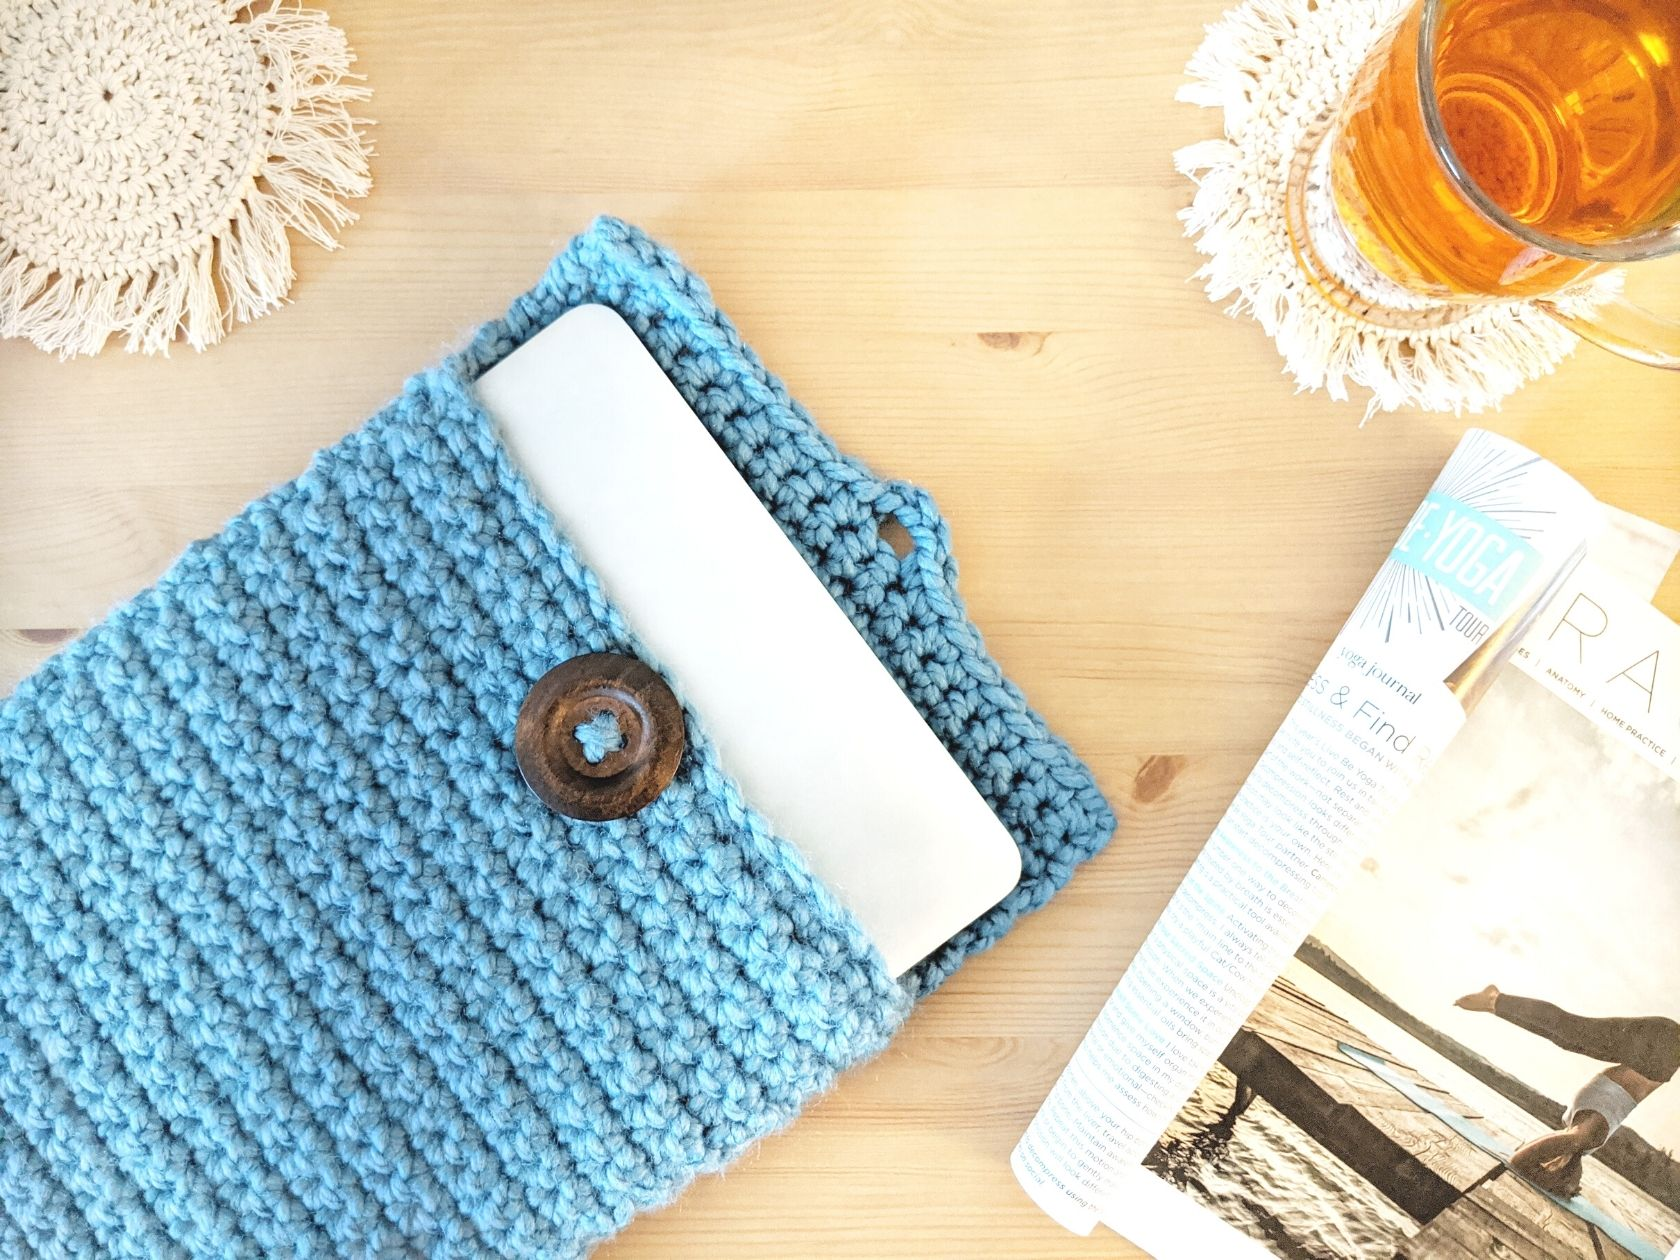 chunky crochet laptop cover on a wooden table with a magazine, coaster, and tea